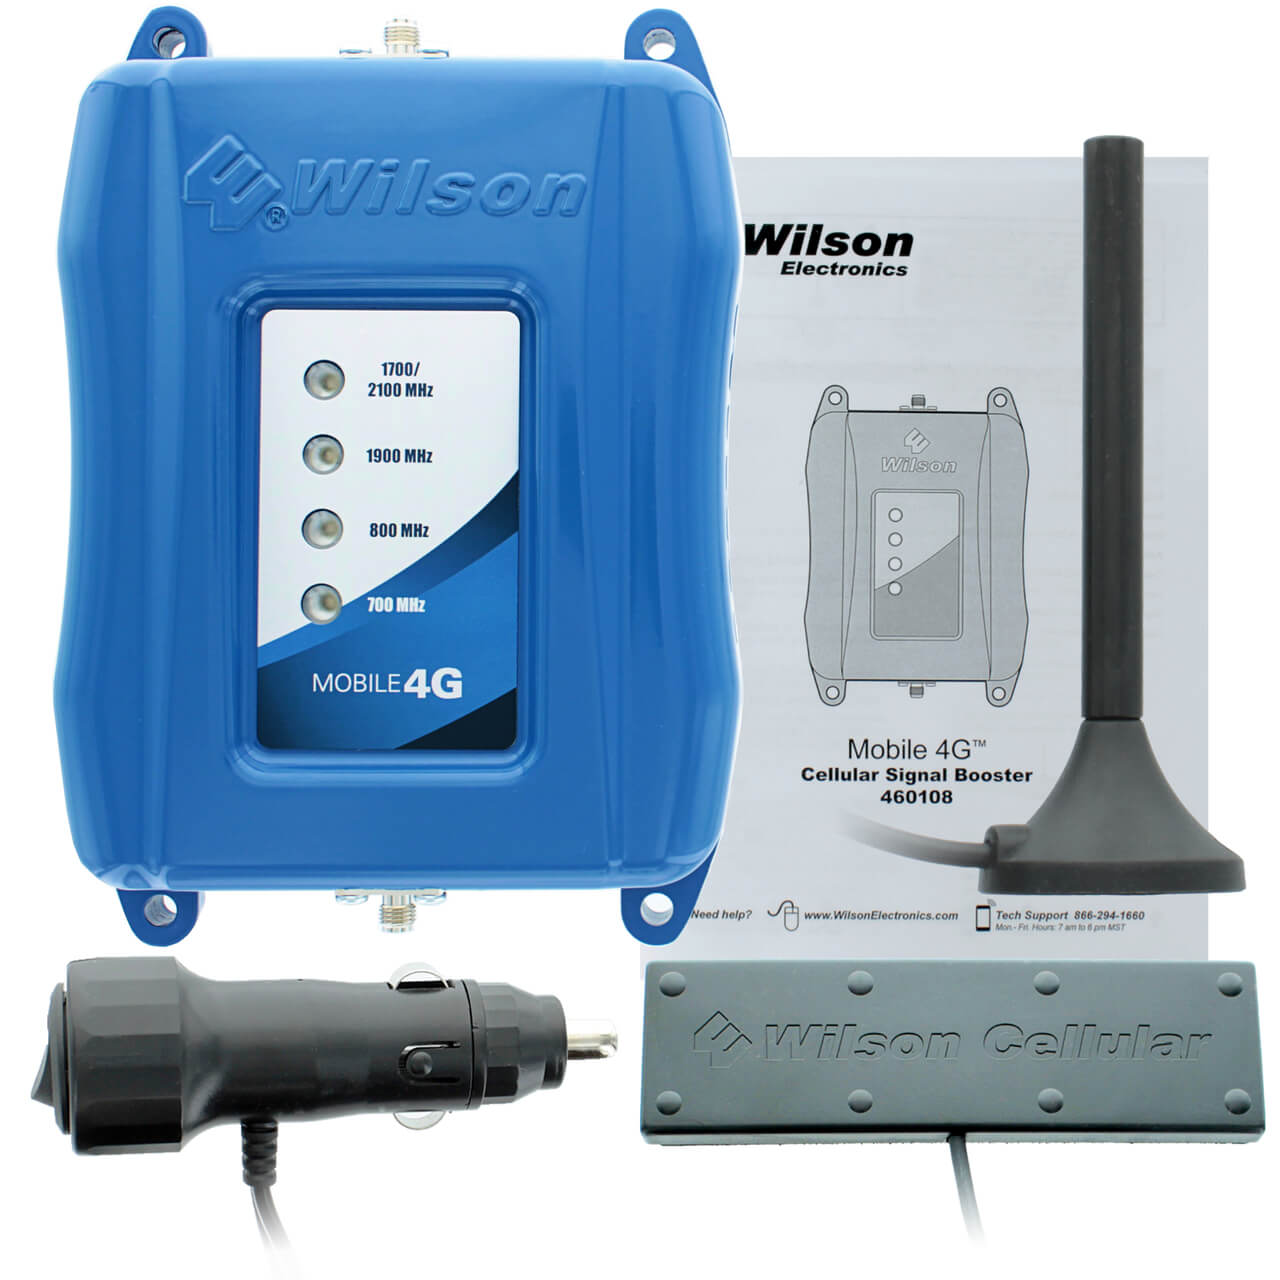 Wilson cell phone signal booster 460108 mobile 4G